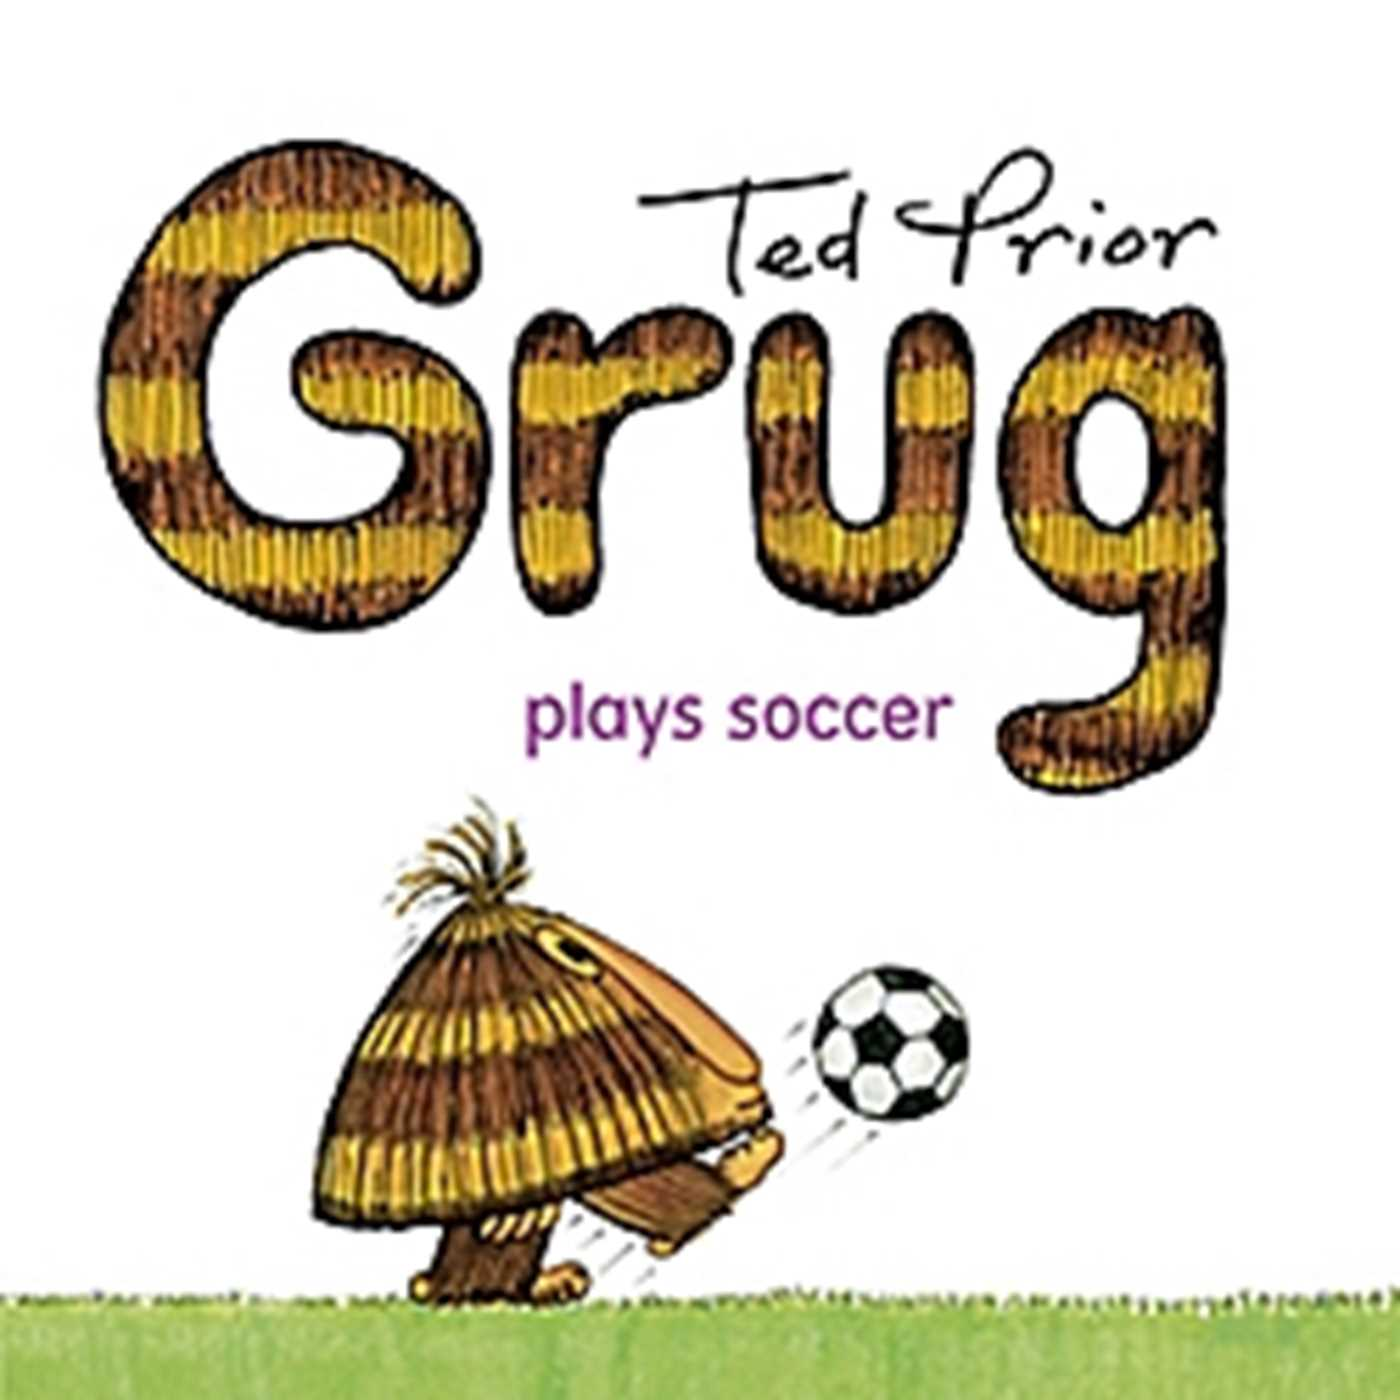 Grug Plays Soccer by Ted Prior Children's Reading Picture Story Book 2009